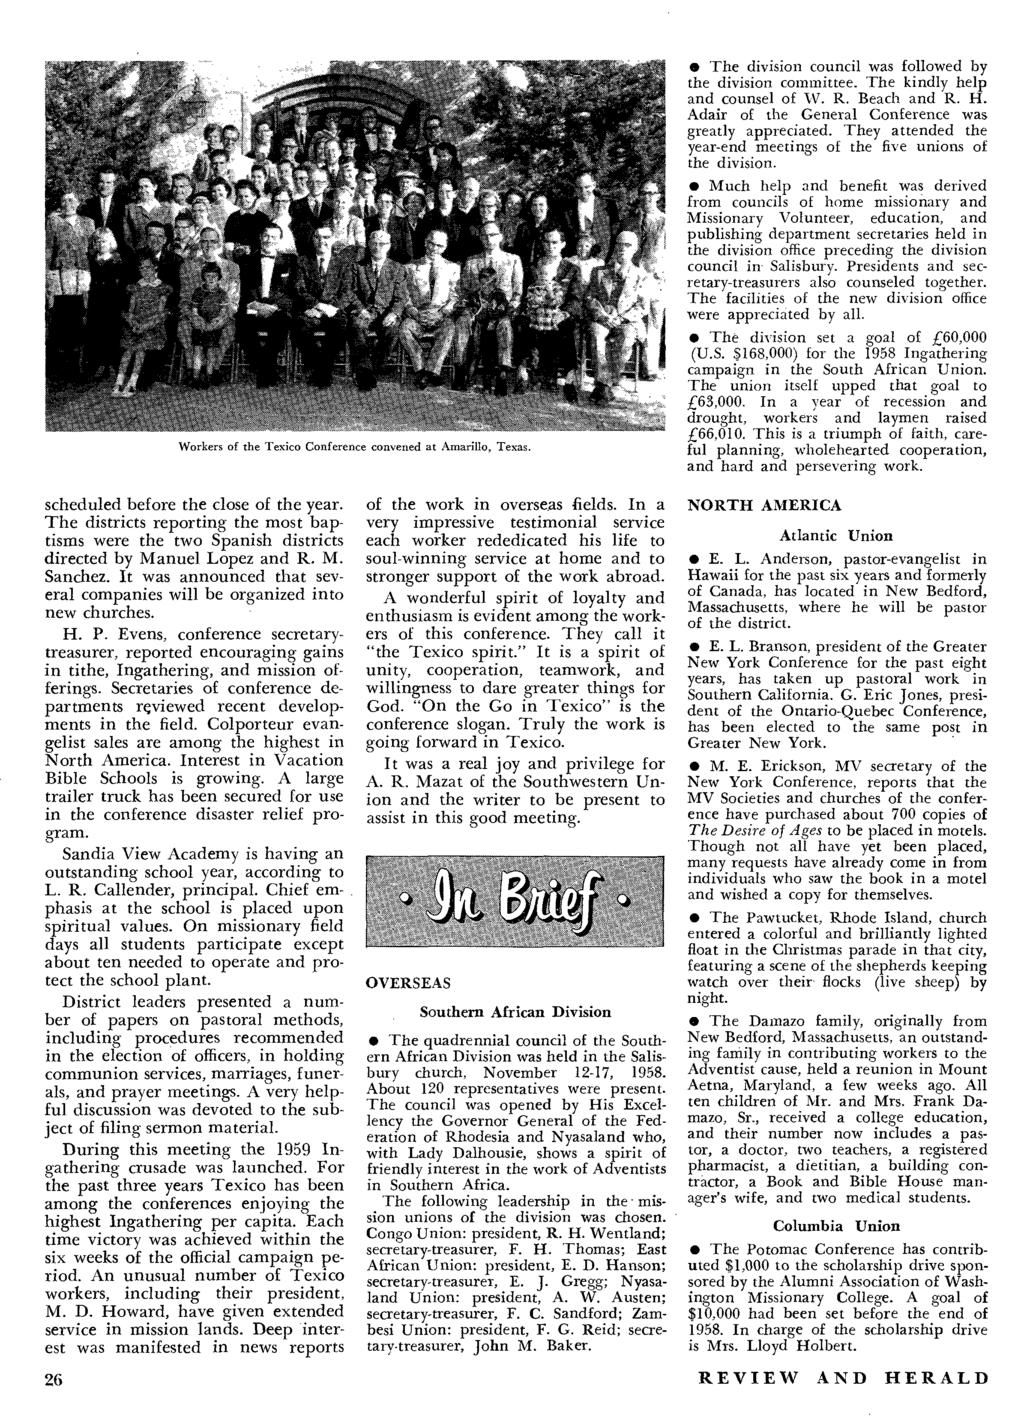 Workers of the Texico Conference convened at Amarillo, Texas. The division council was followed by the division committee. The kindly help and counsel of W. R. Beach and R. H.